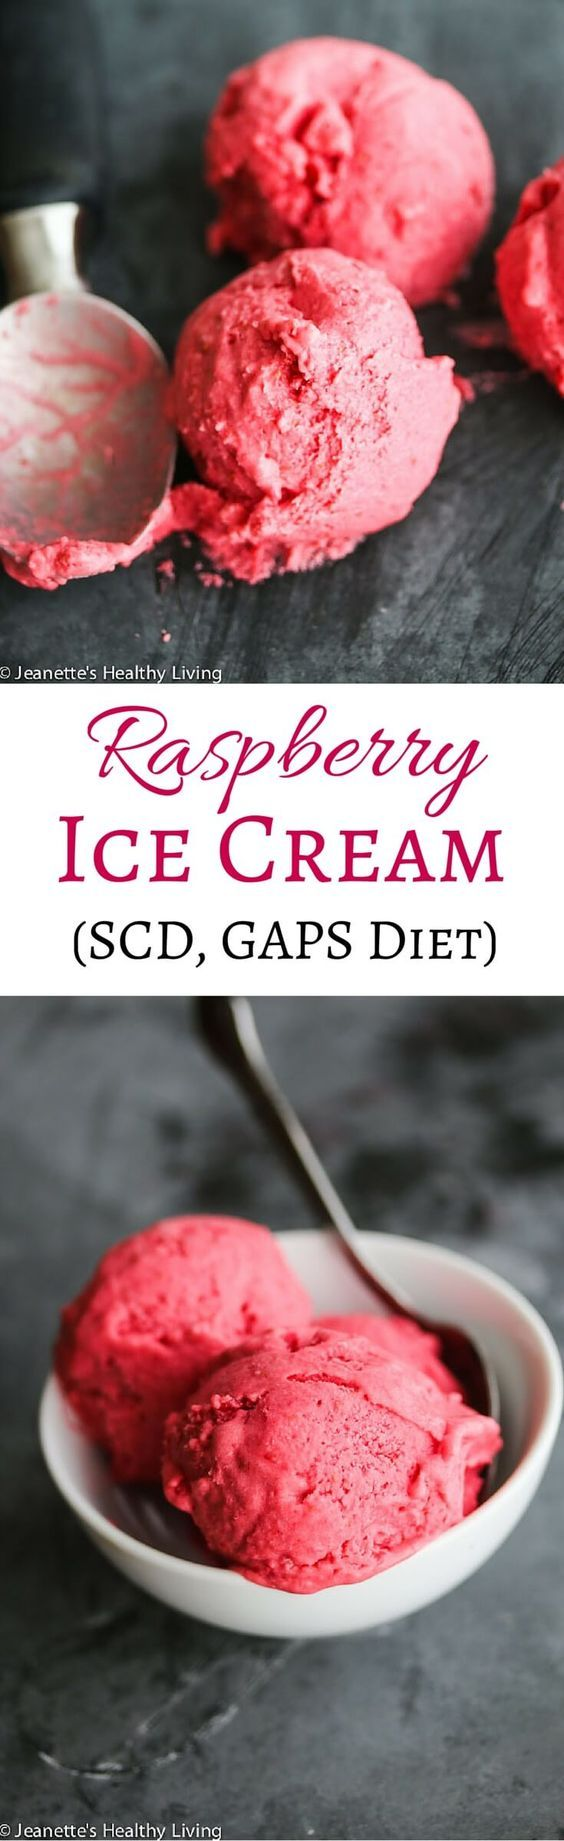 Raspberry Ice Cream - this 3 ingredient ice cream is SCD and GAPS Diet friendly ~ http://jeanetteshealthyliving.com